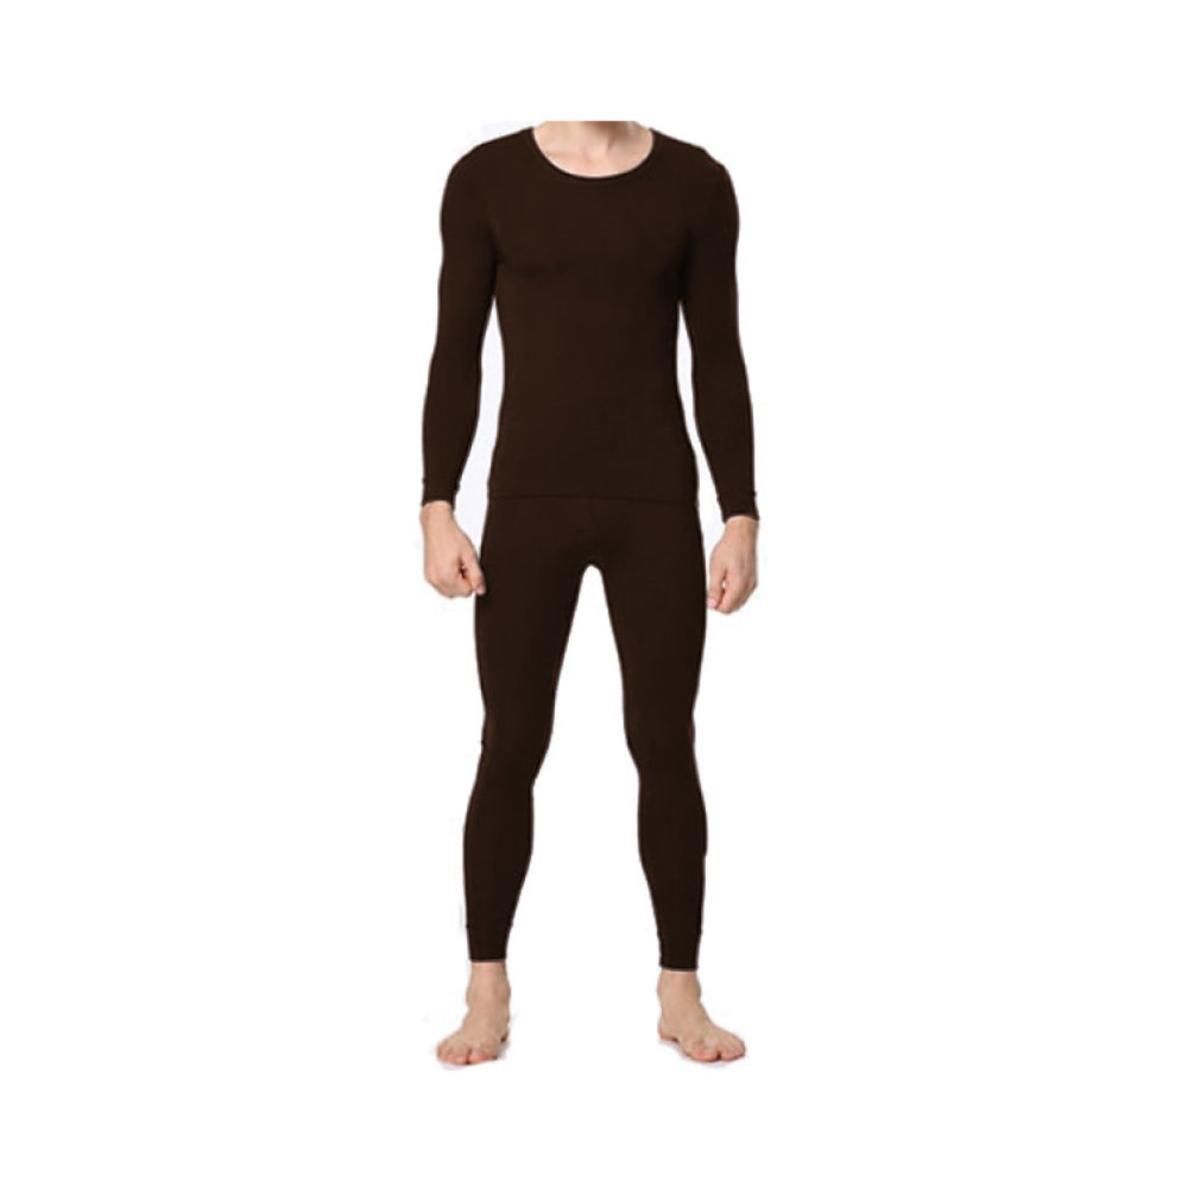 Men's Thermal Base Layer Clothing. Clothing. Men. Men's Thermal Base Layer Clothing. Showing 48 of results that match your query. Product - 2pc Men's or Women's Gold Medal Thermal Base Layer Performance Set Shirt Pants. Reduced Price. Product Image. Price $ 99 - $